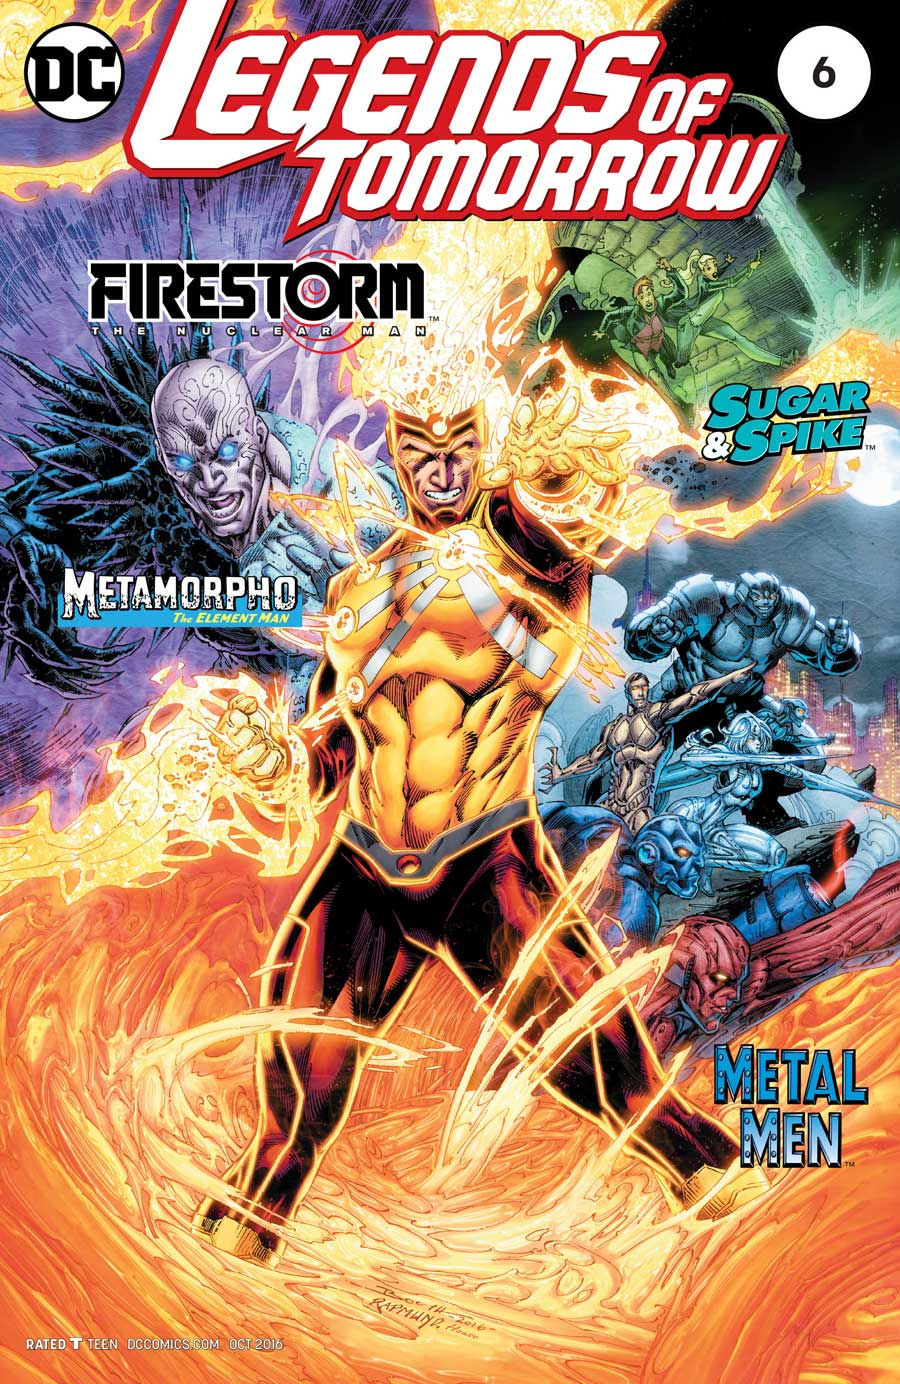 Firestorm in Legends of Tomorrow #6 by Gerry Conway, Eduardo Pansica and Rob Hunter